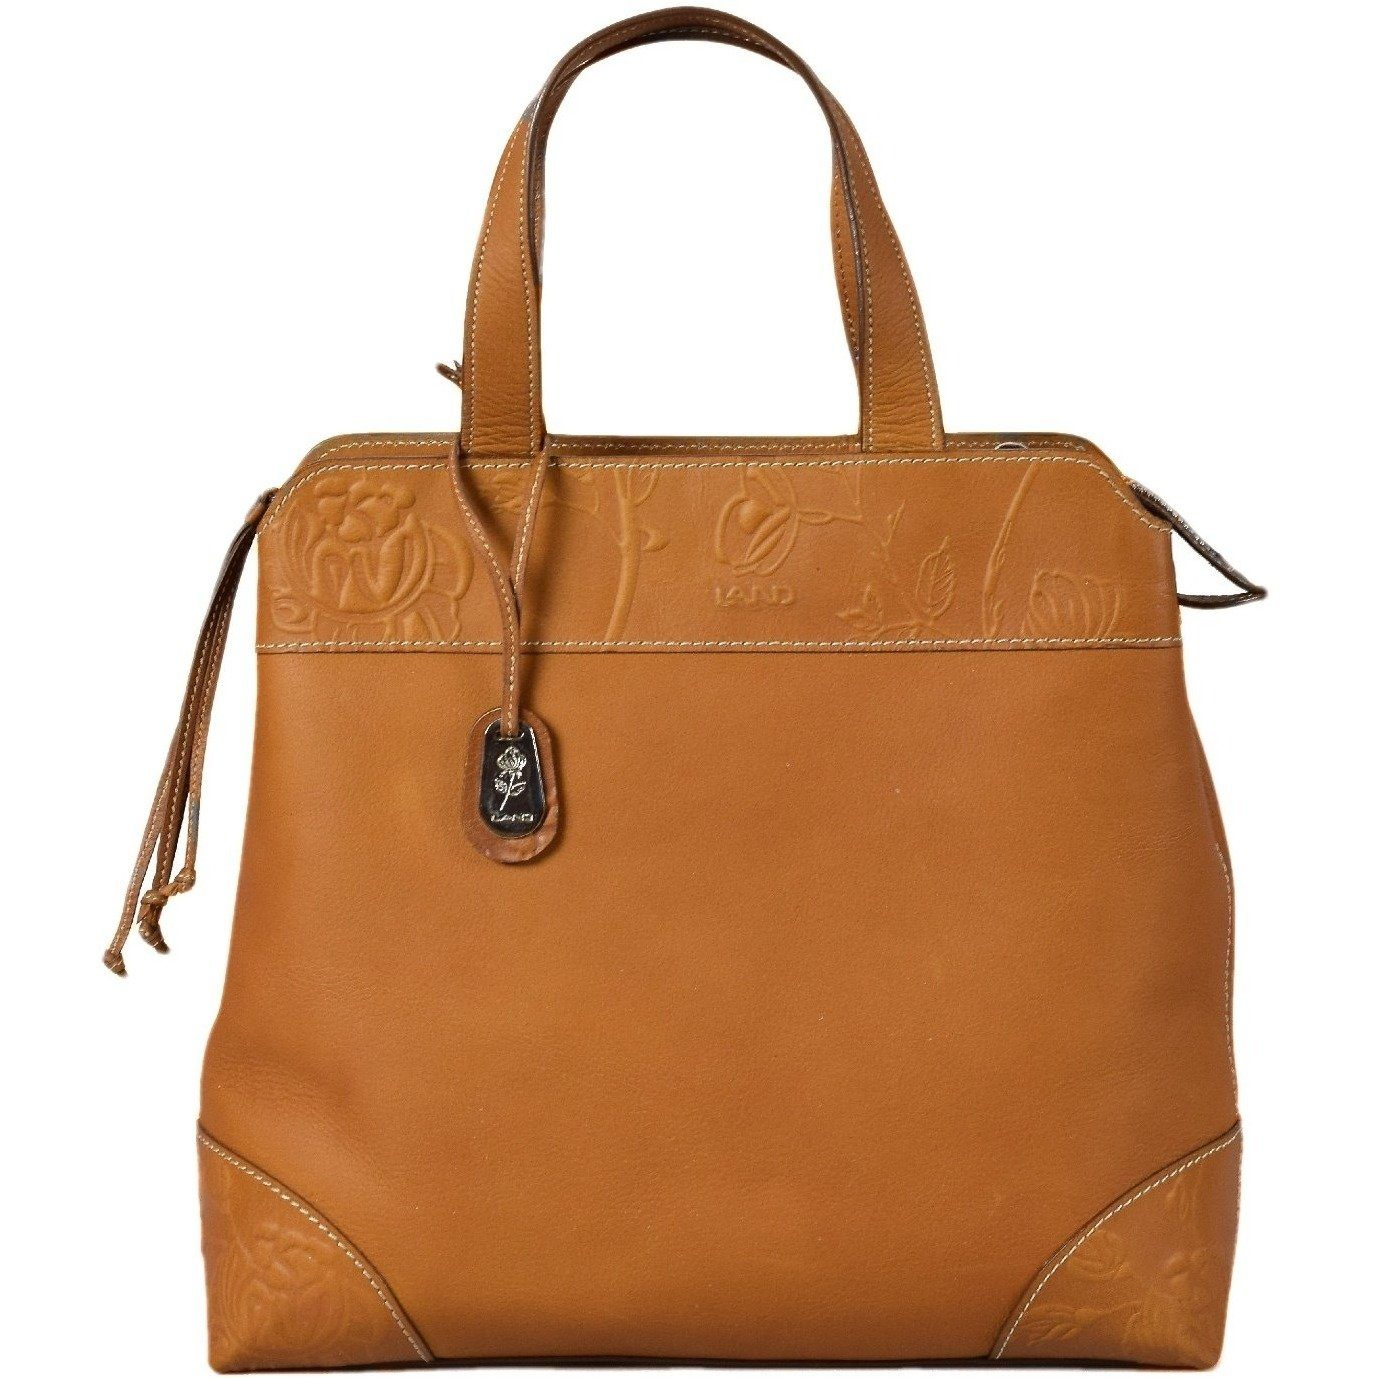 Magnolia Sofia Satchel, Handbag | LAND Leather